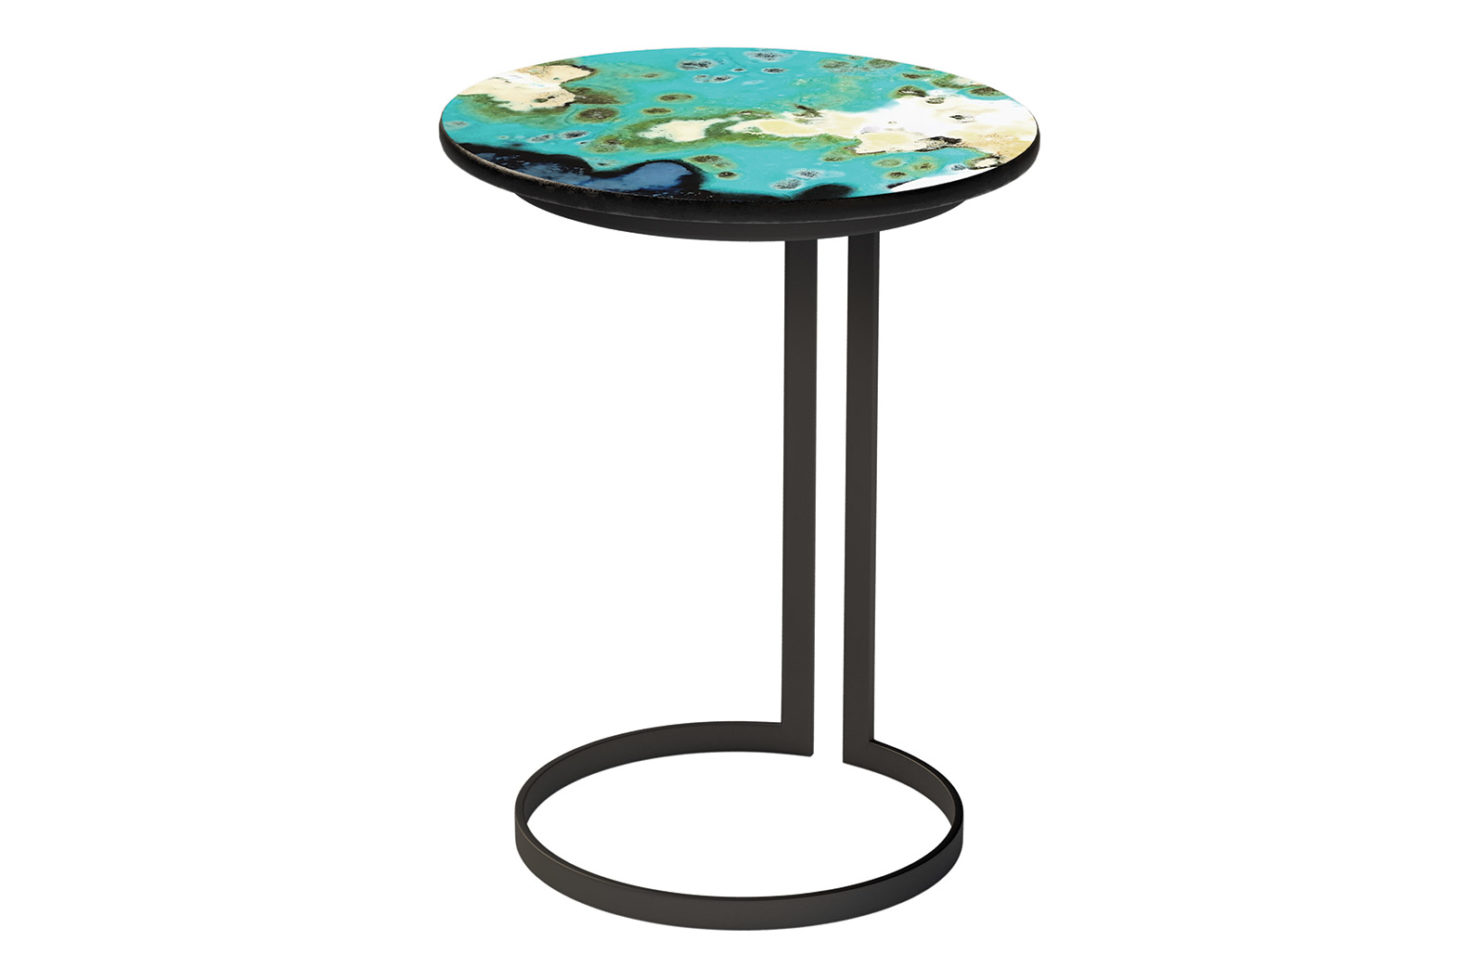 etna c table 390FT002P2OC front